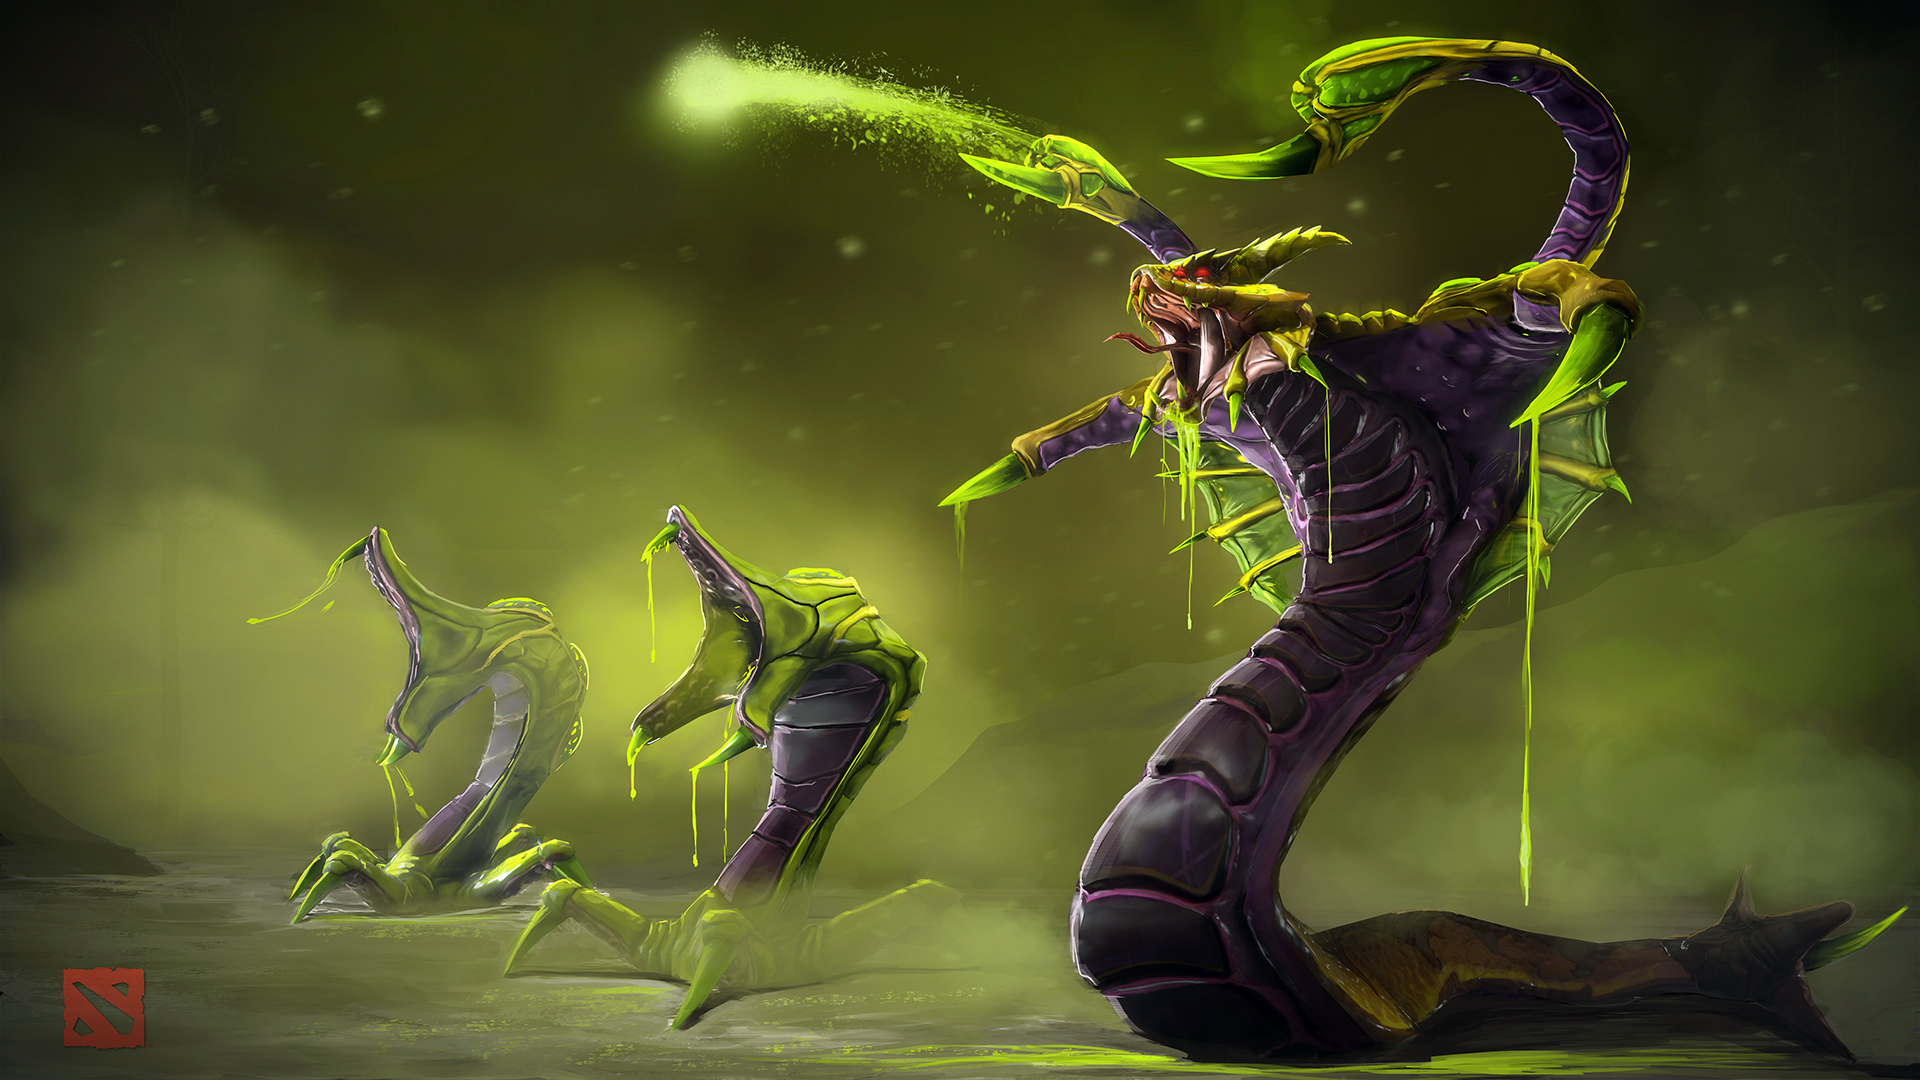 dota2 wallpapers.seoplus.com.ua 209